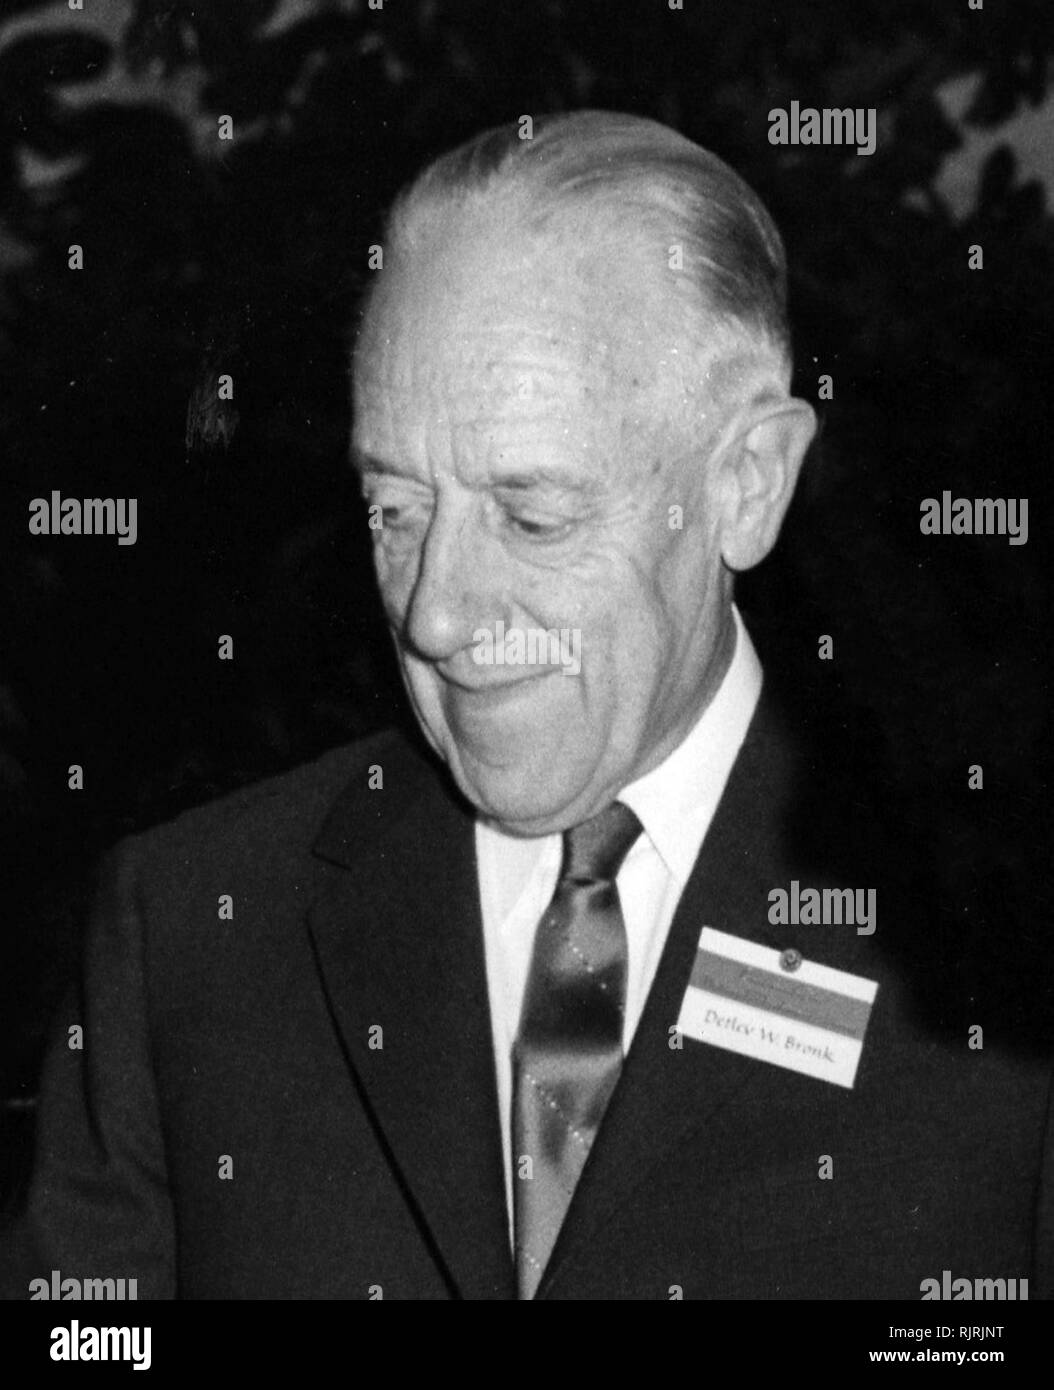 Detlev Wulf Bronk (1897 - 1975), American scientist, educator, and administrator. He is credited with establishing biophysics as a recognized discipline. He was a named member of the In UFO conspiracy theories, Majestic 12 (or MJ-12); code name of an alleged secret committee of scientists, military leaders, and government officials, formed in 1947 by an executive order by U.S. President Harry S. Truman to facilitate recovery and investigation of alien spacecraft - Stock Image